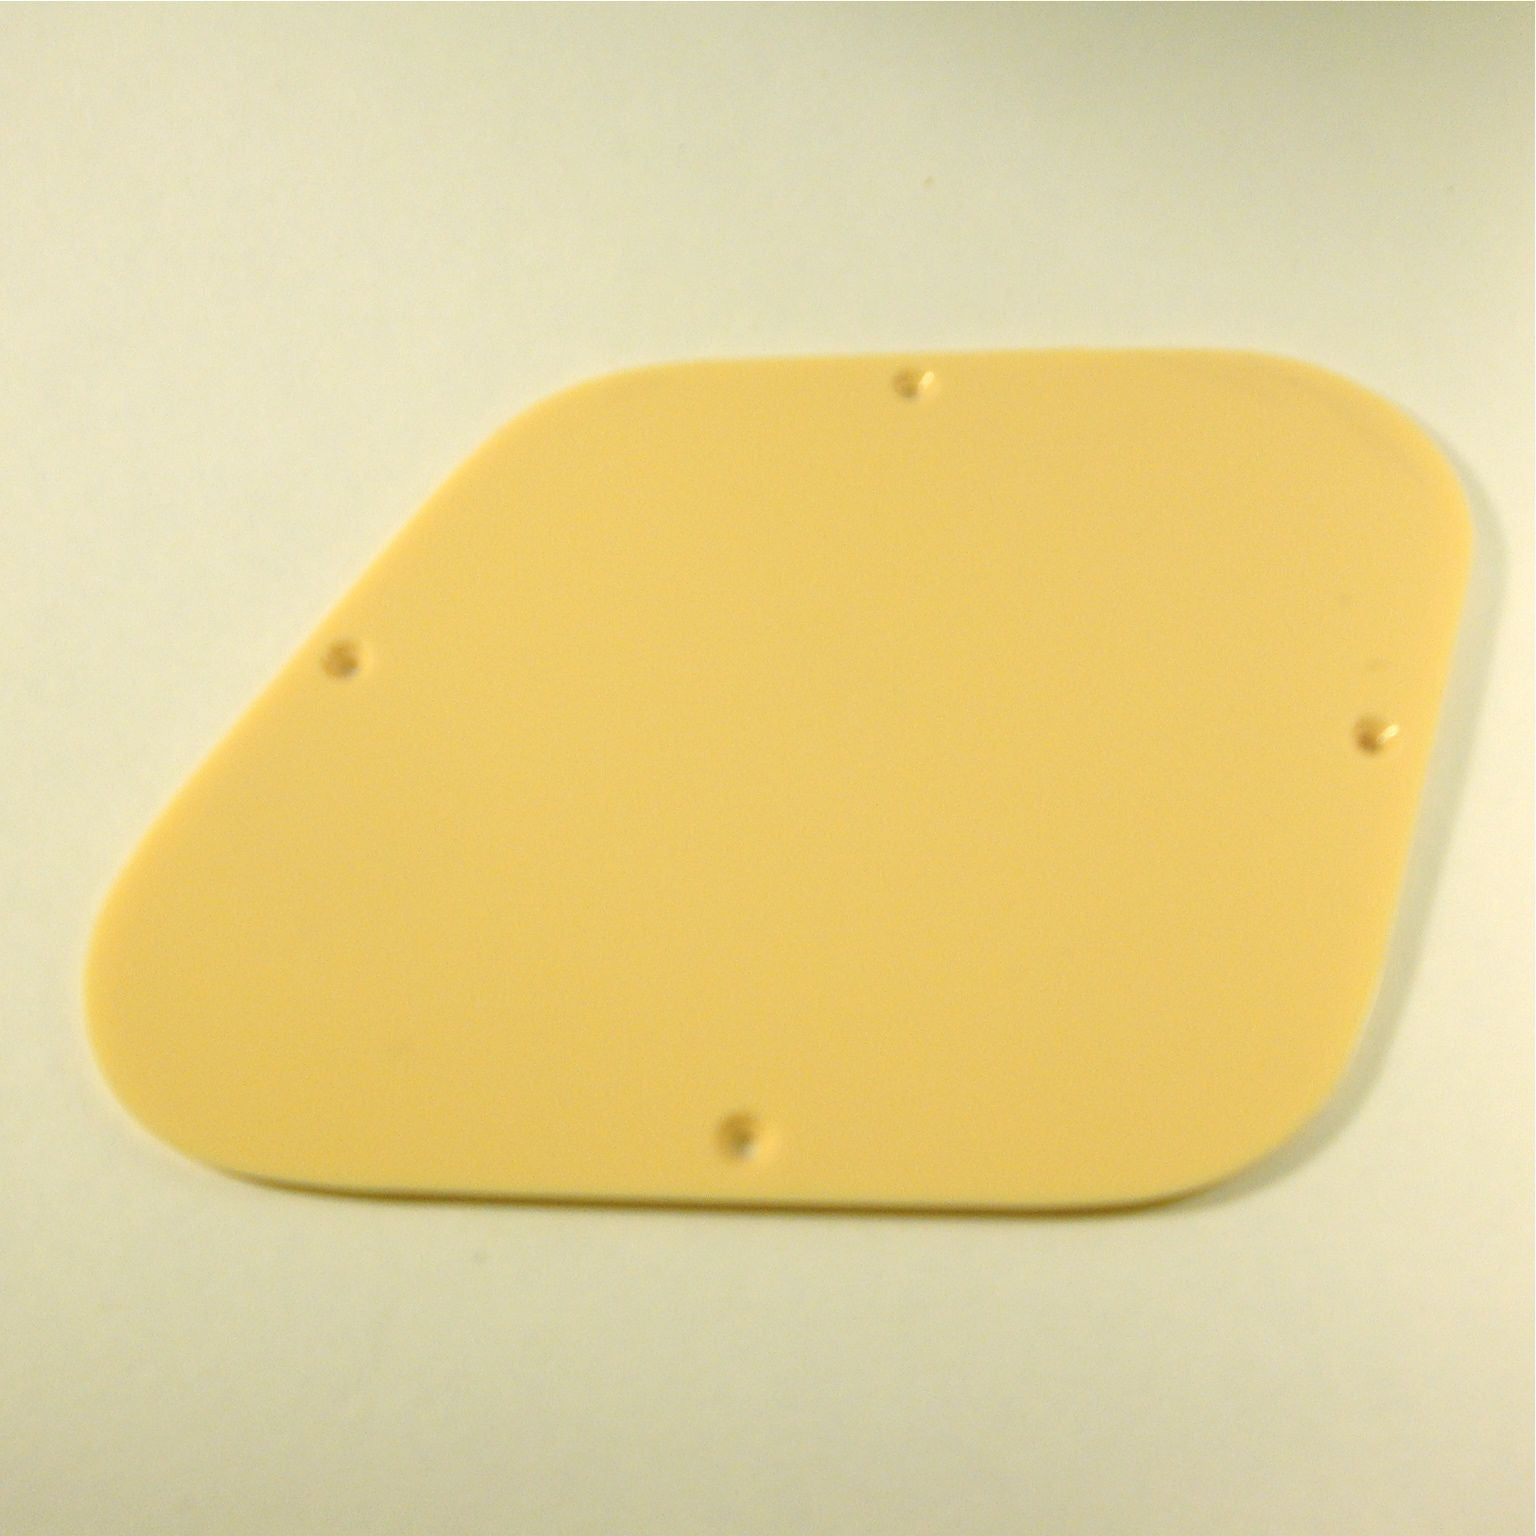 Les Paul-style cover plate for electronics cavity